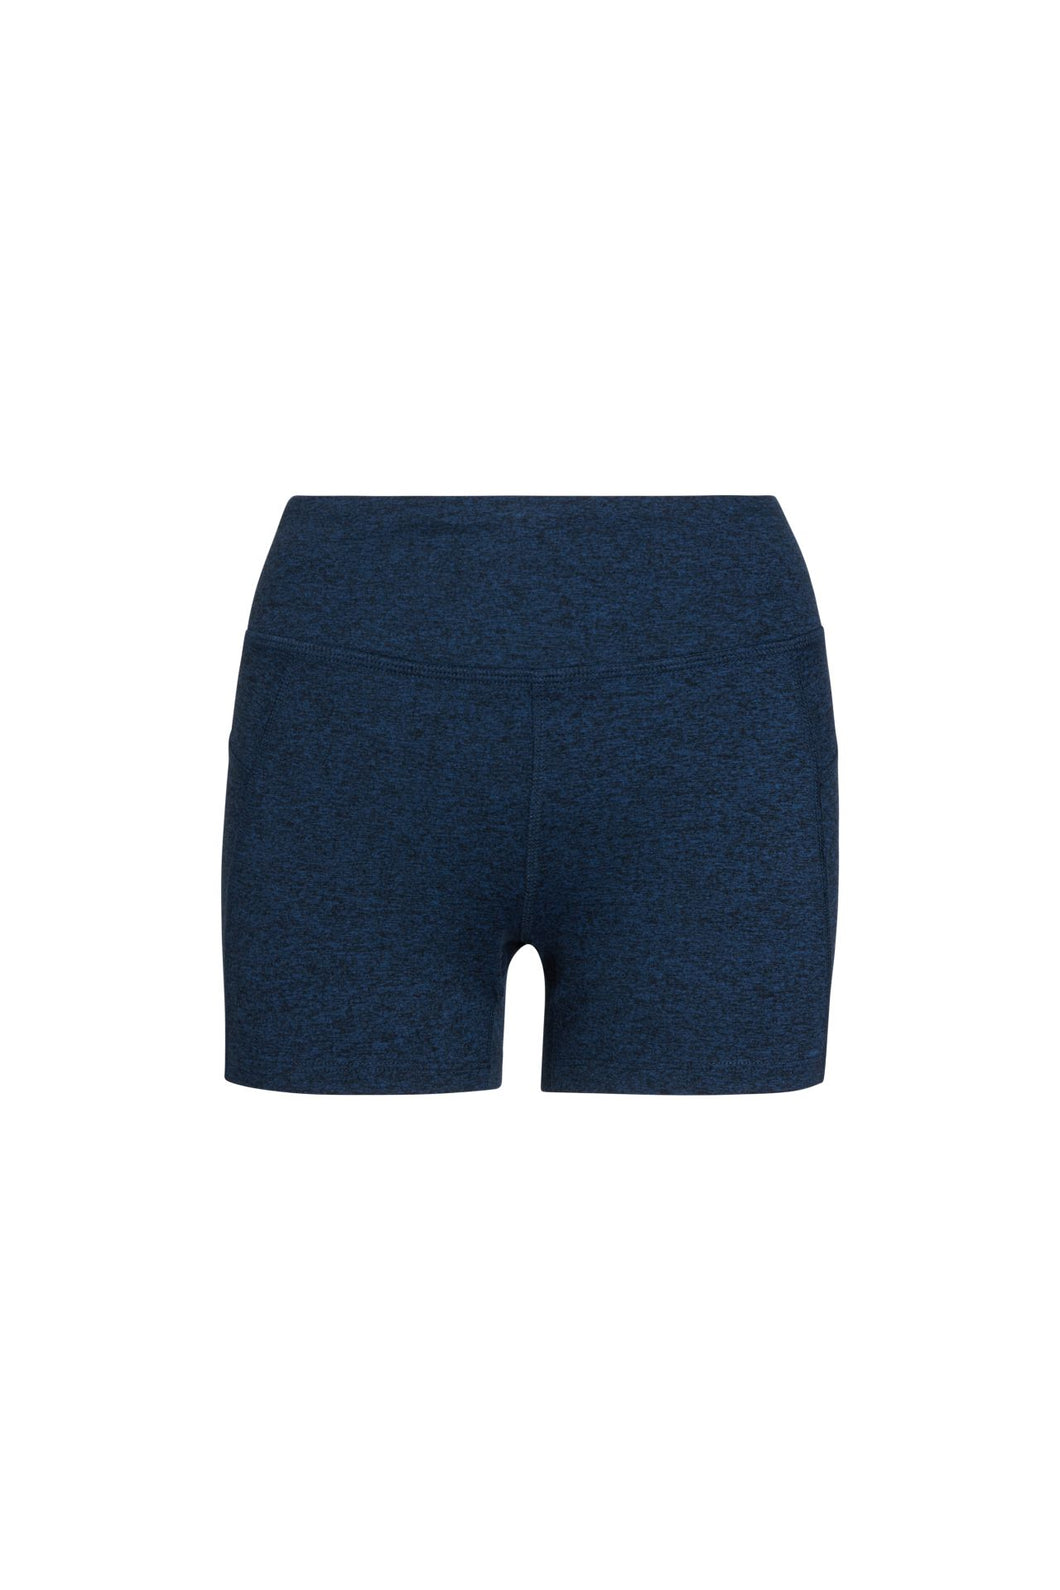 Women's Luxe Contour Shorts